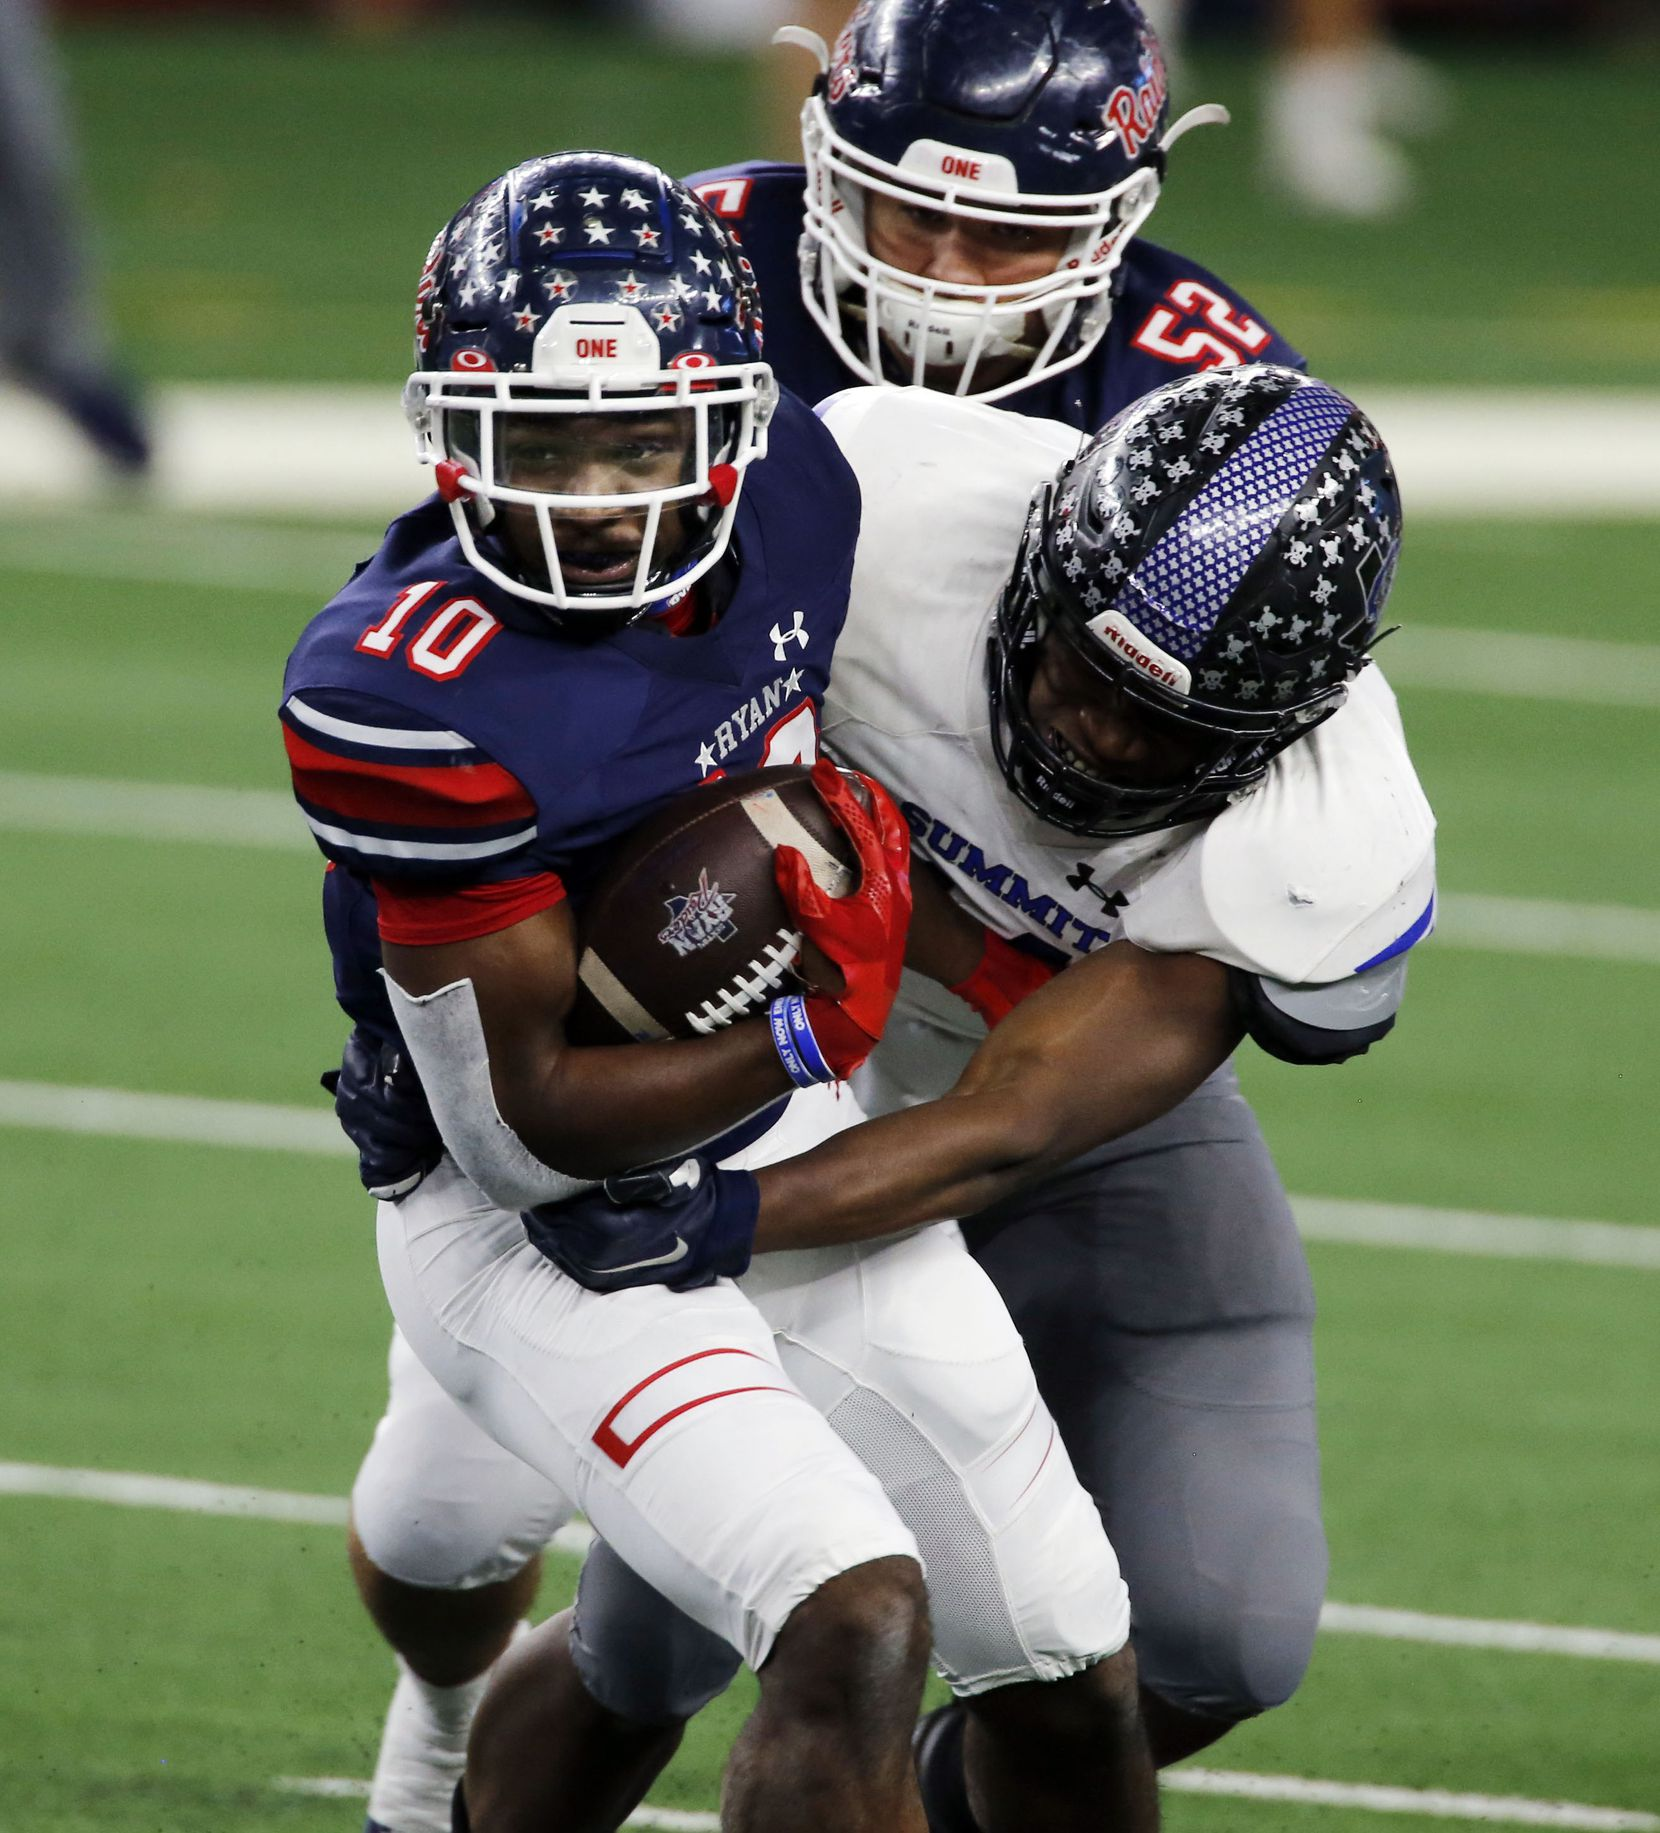 Denton Ryan's Kalib Hicks (10) picks up a couple of yards under pressure during the first half of the Class 5A Division I state semifinal football playoff game against Mansfield Summit High at AT&T Stadium in Arlington on Friday, January 8, 2021. (John F. Rhodes / Special Contributor)